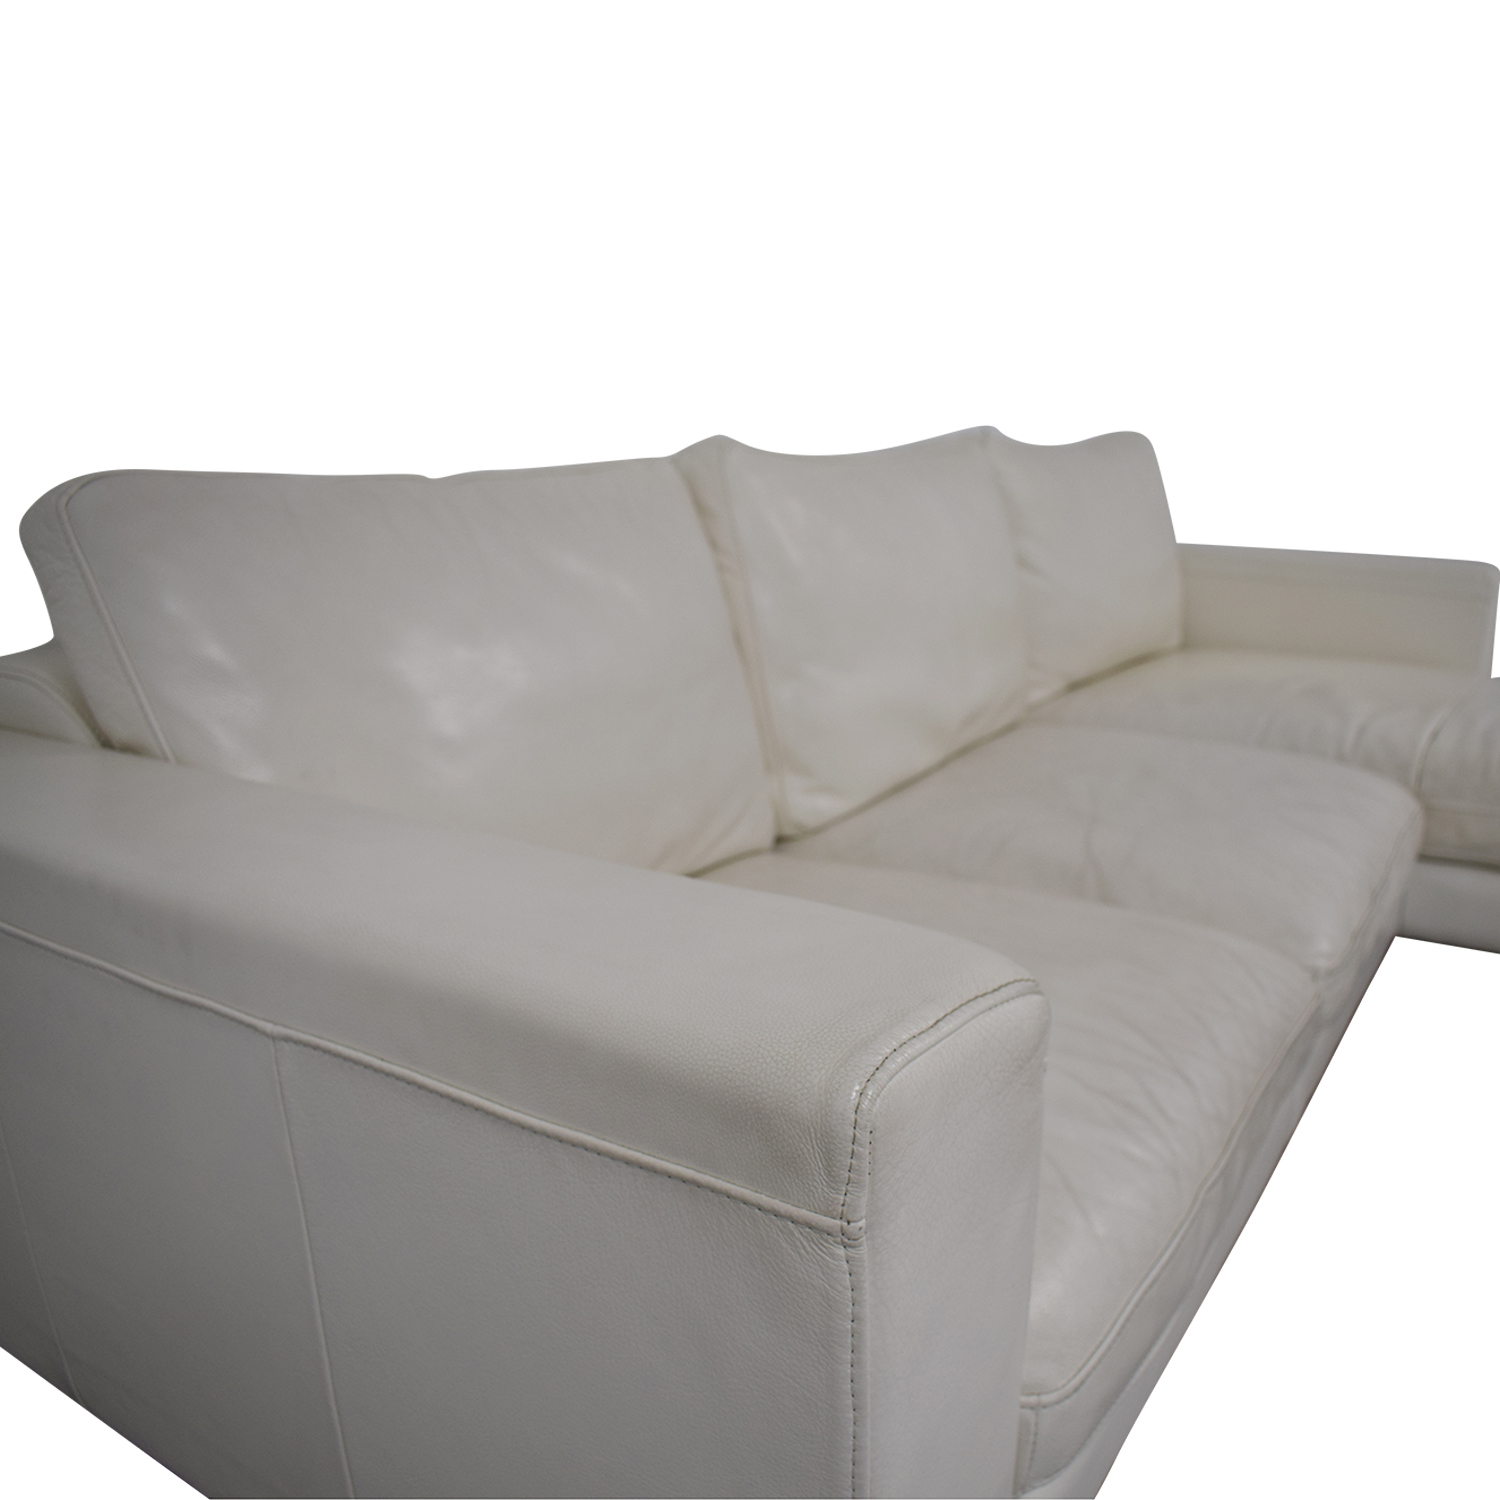 80% OFF - Modern Chaise Sectional Sofa / Sofas